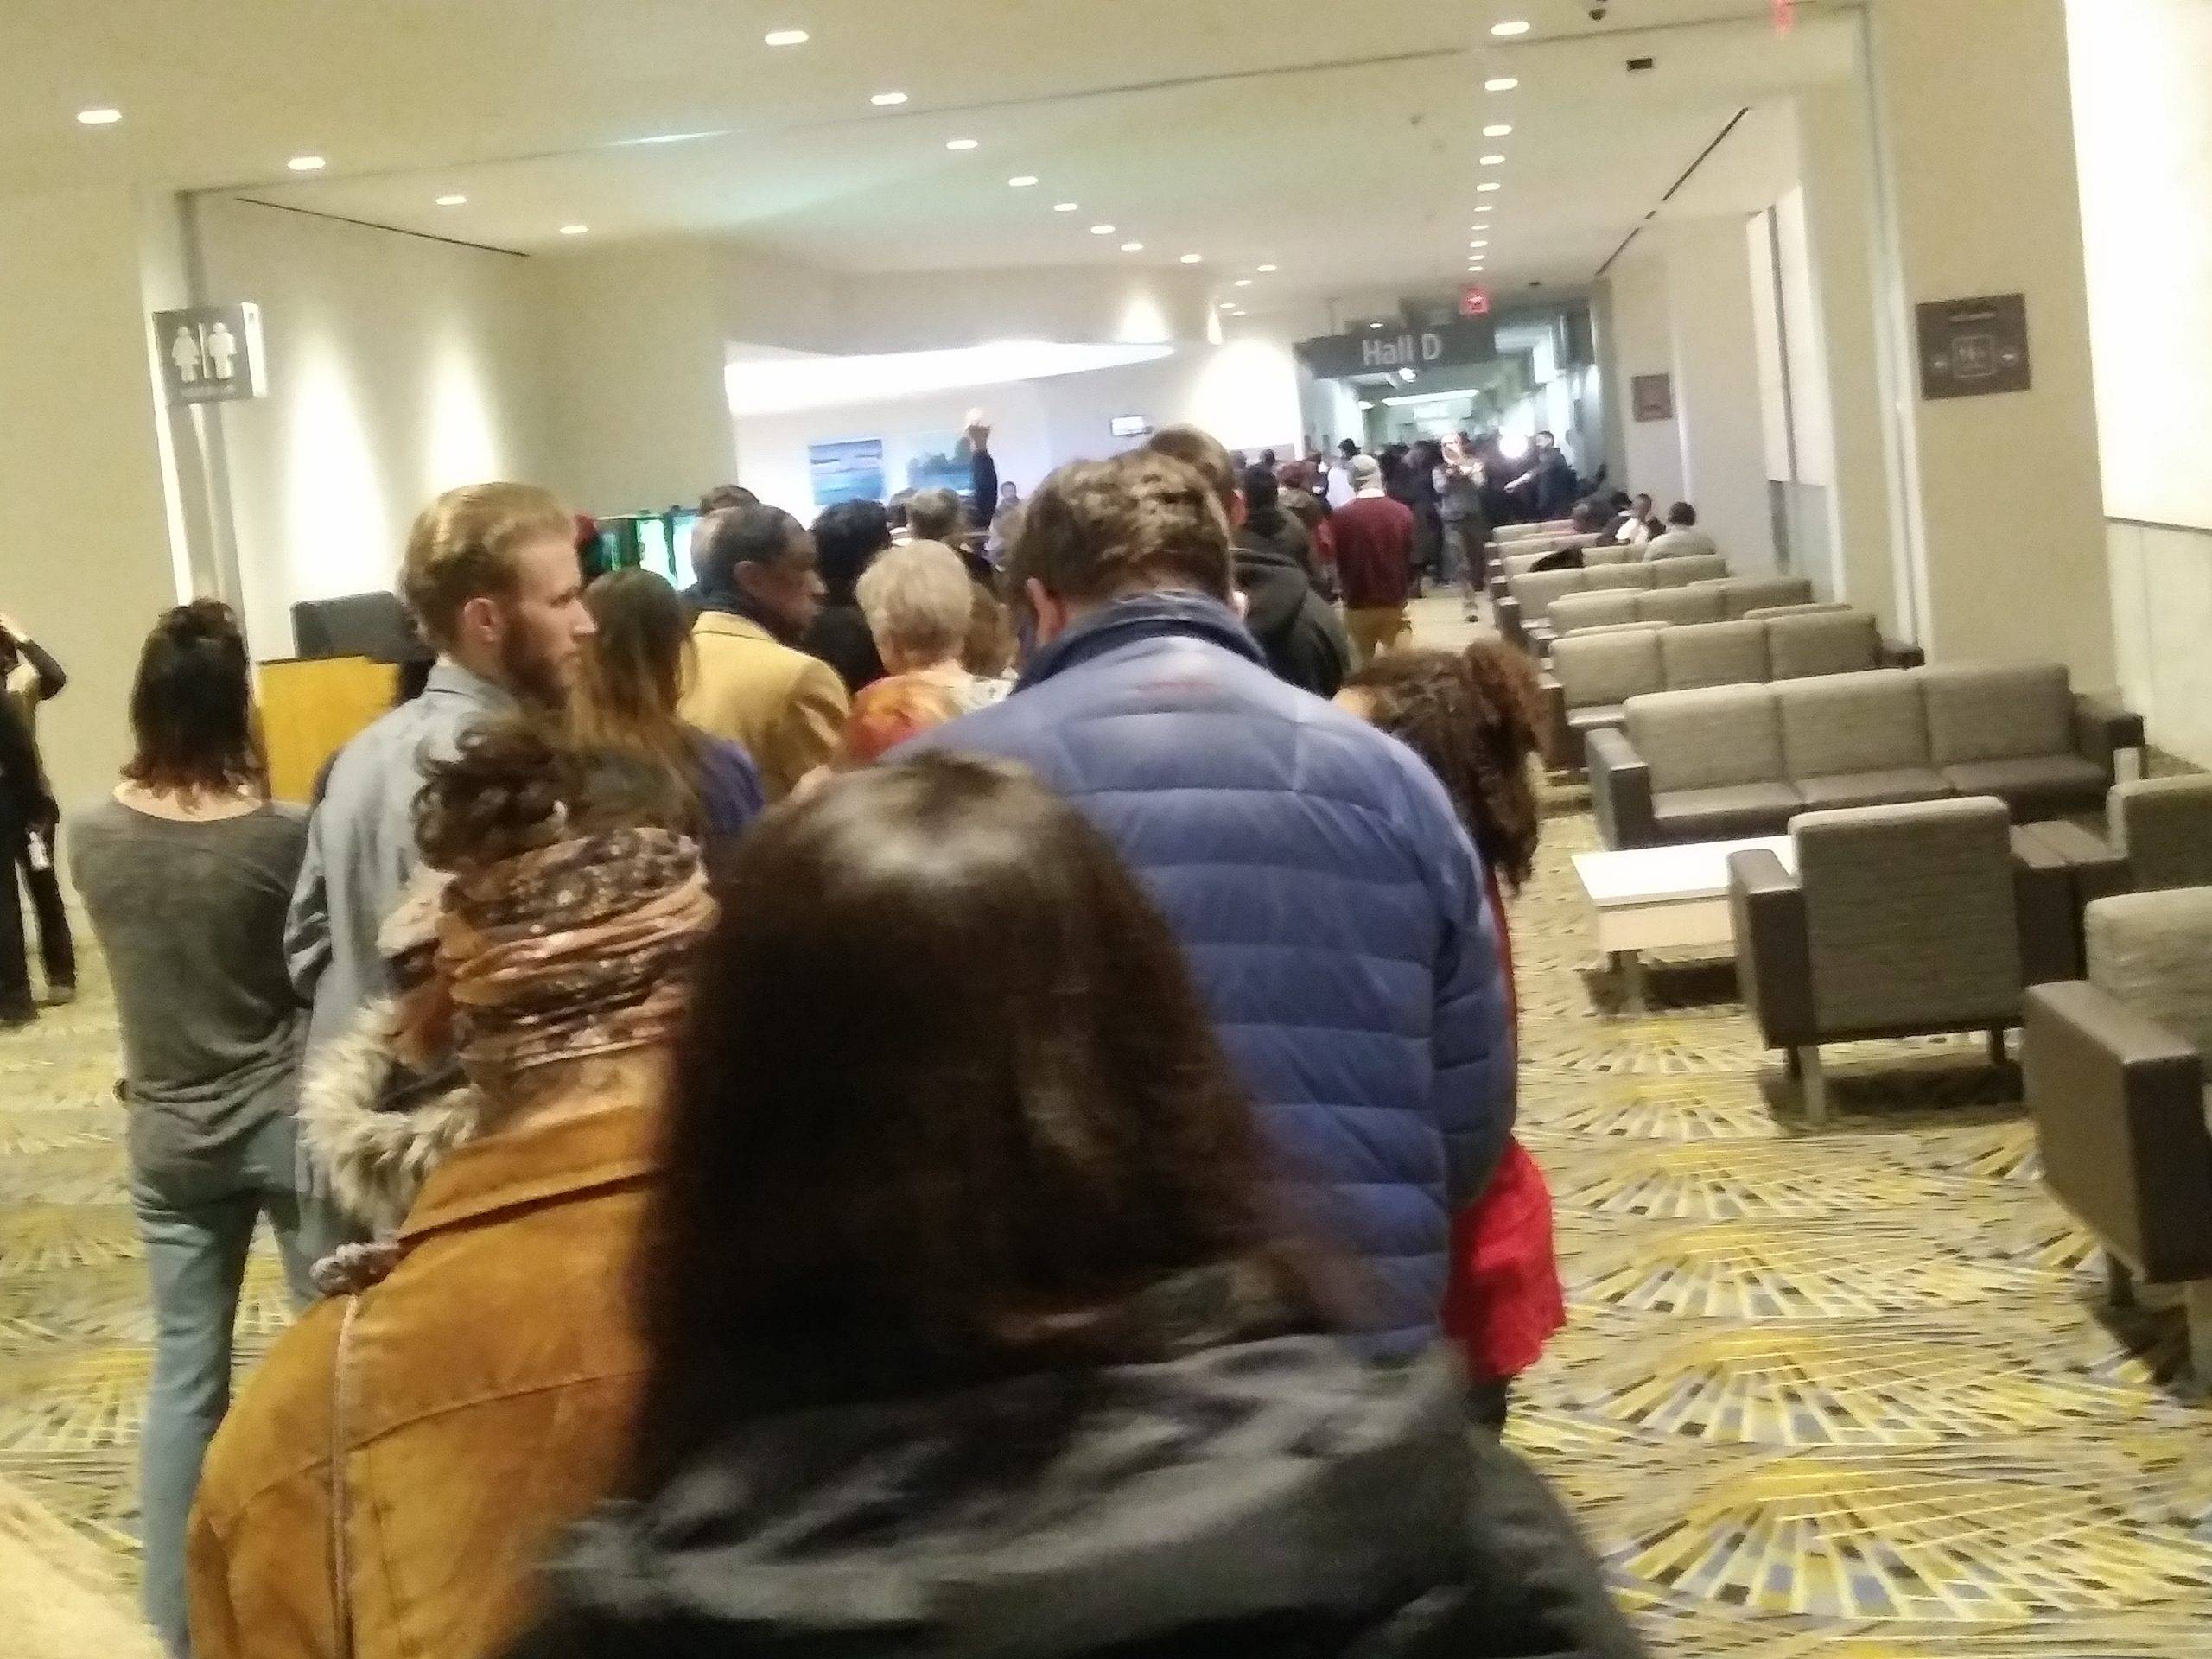 thousands standing in line to enter Sanders rally on March 6, 2020 at the TCF Conference Center in